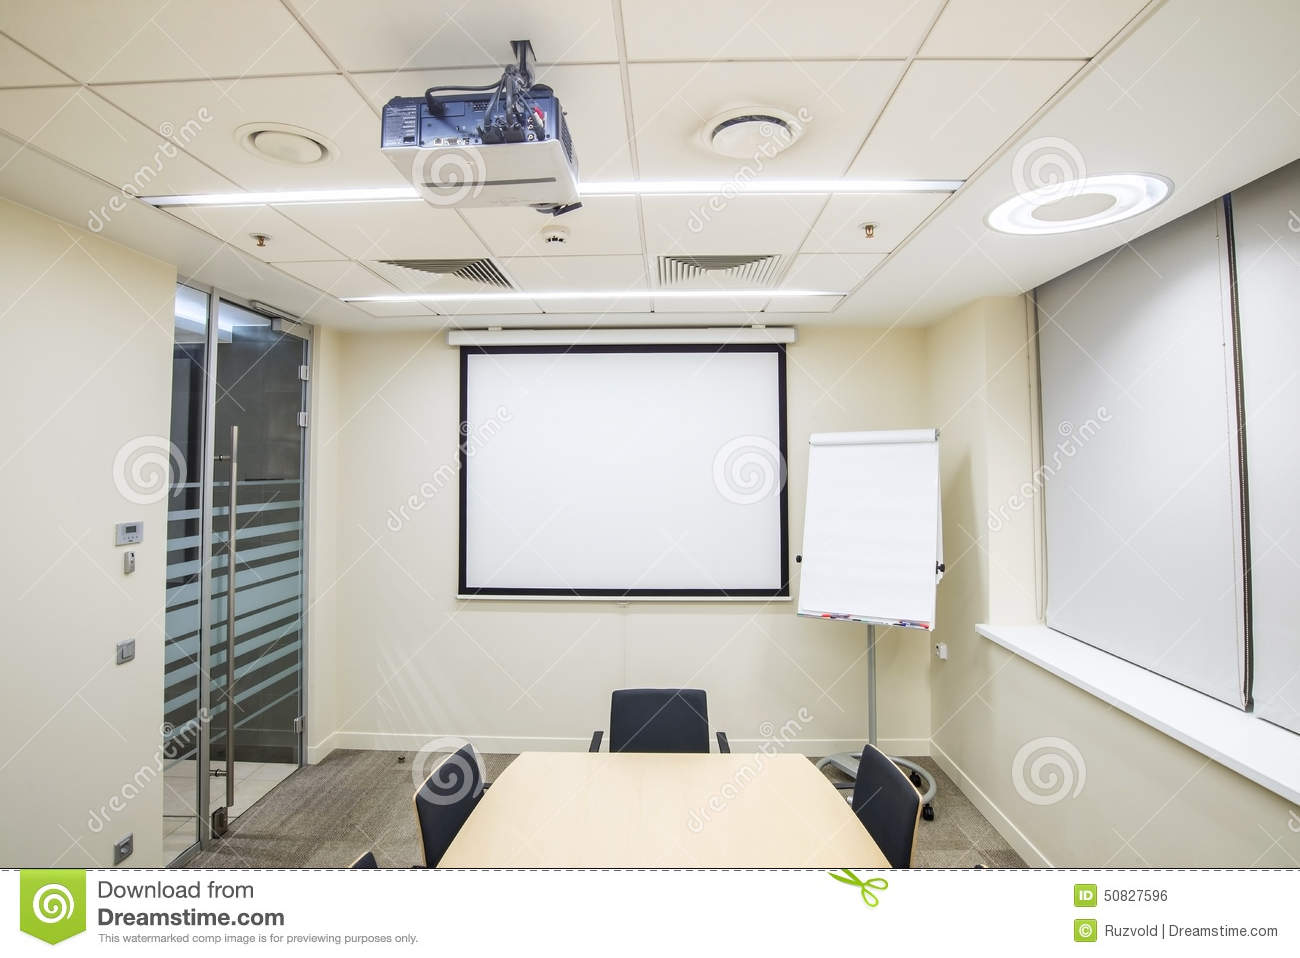 Small meeting or training room with tv projector stock for Small tv projector